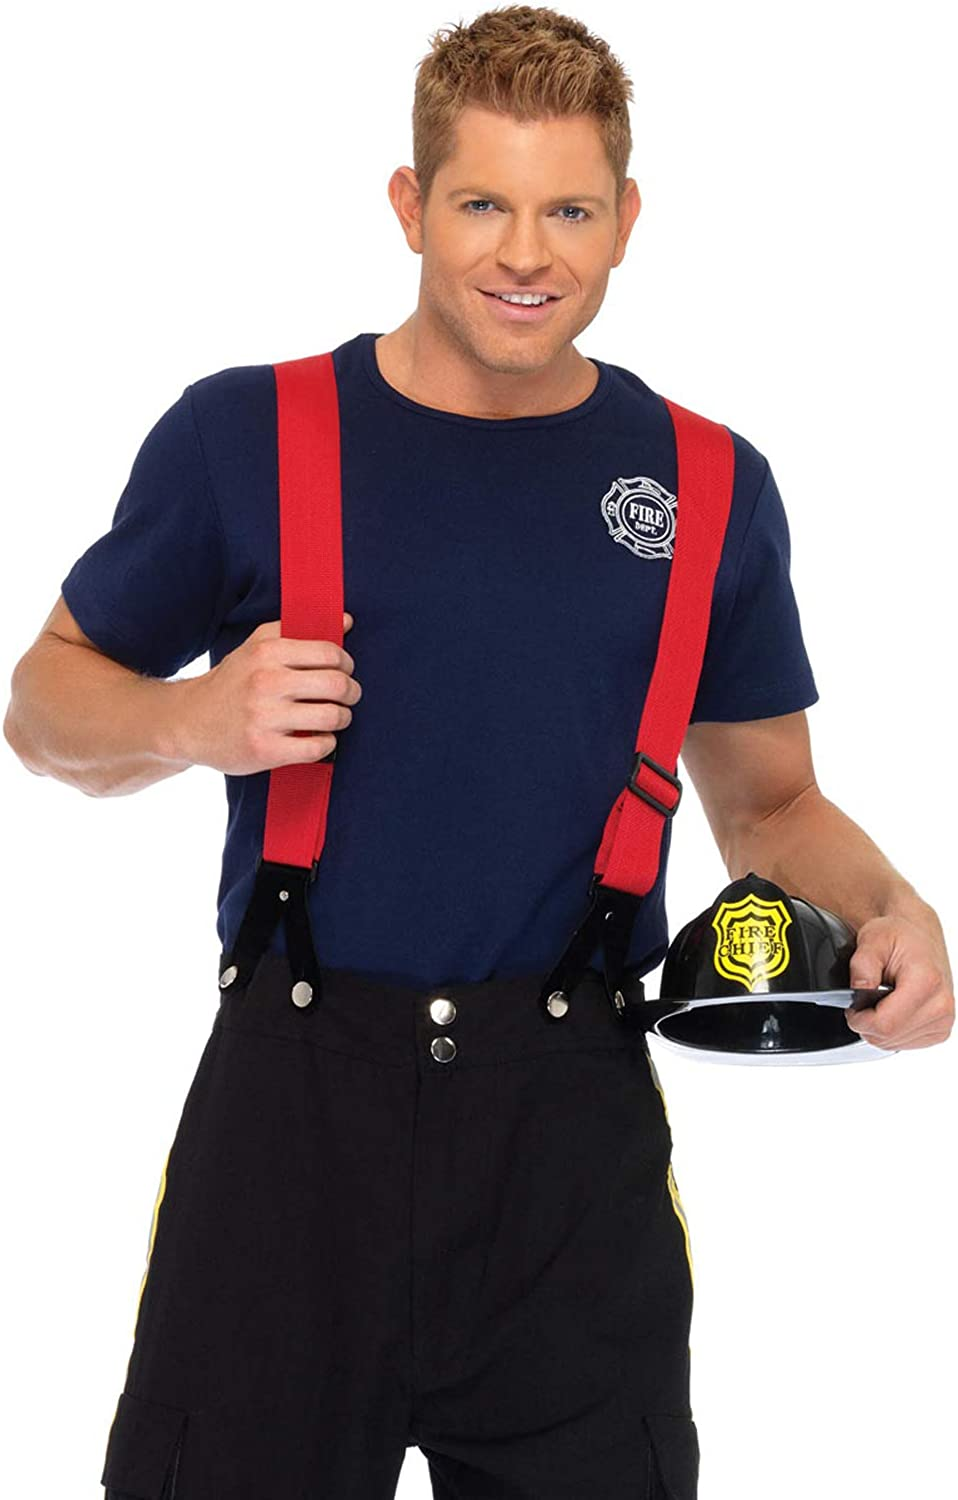 Leg Avenue Men's 3 Piece Fire Captain Costume